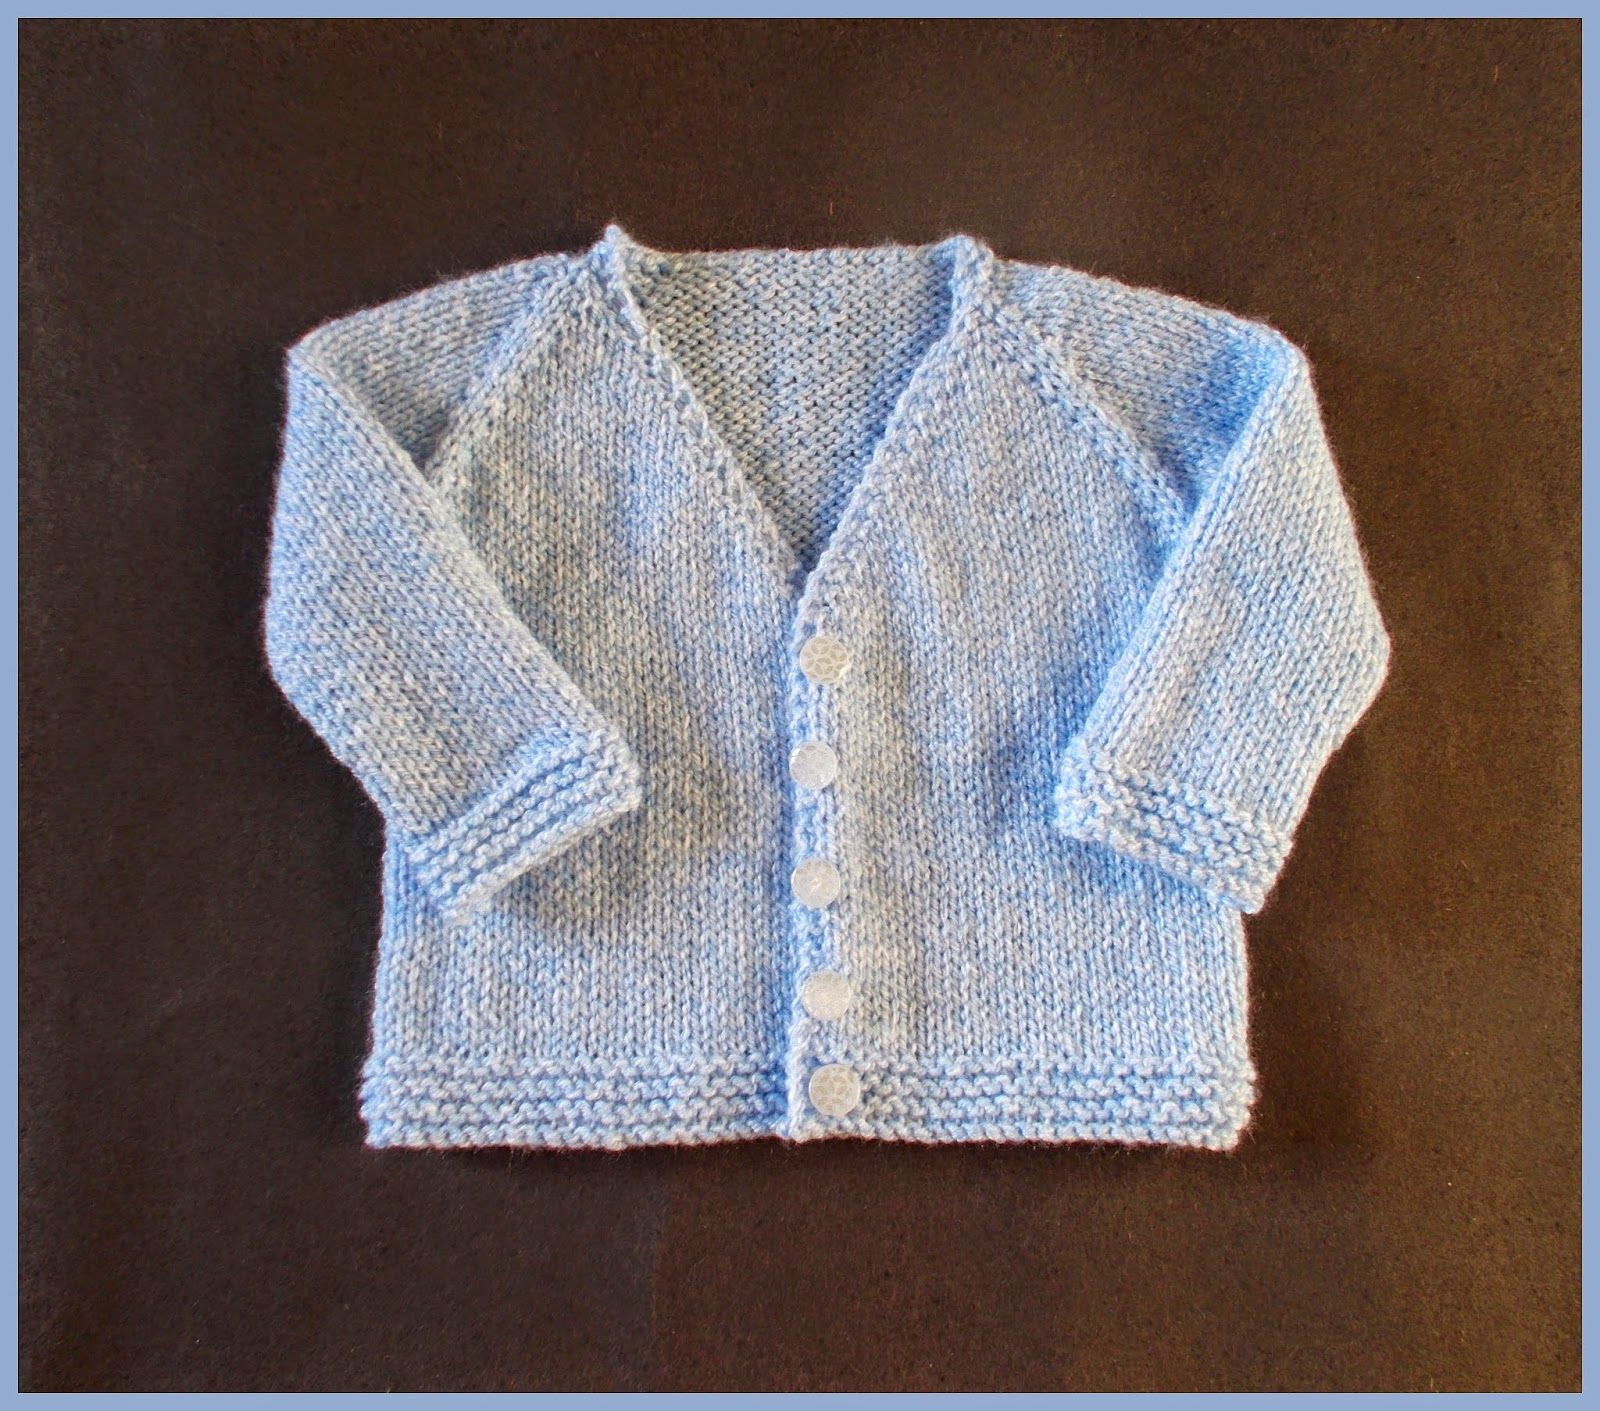 Barclay baby jacket mariannas lazy daisy days babies easy barclay baby jacket mariannas lazy daisy days knitting patterns bankloansurffo Images